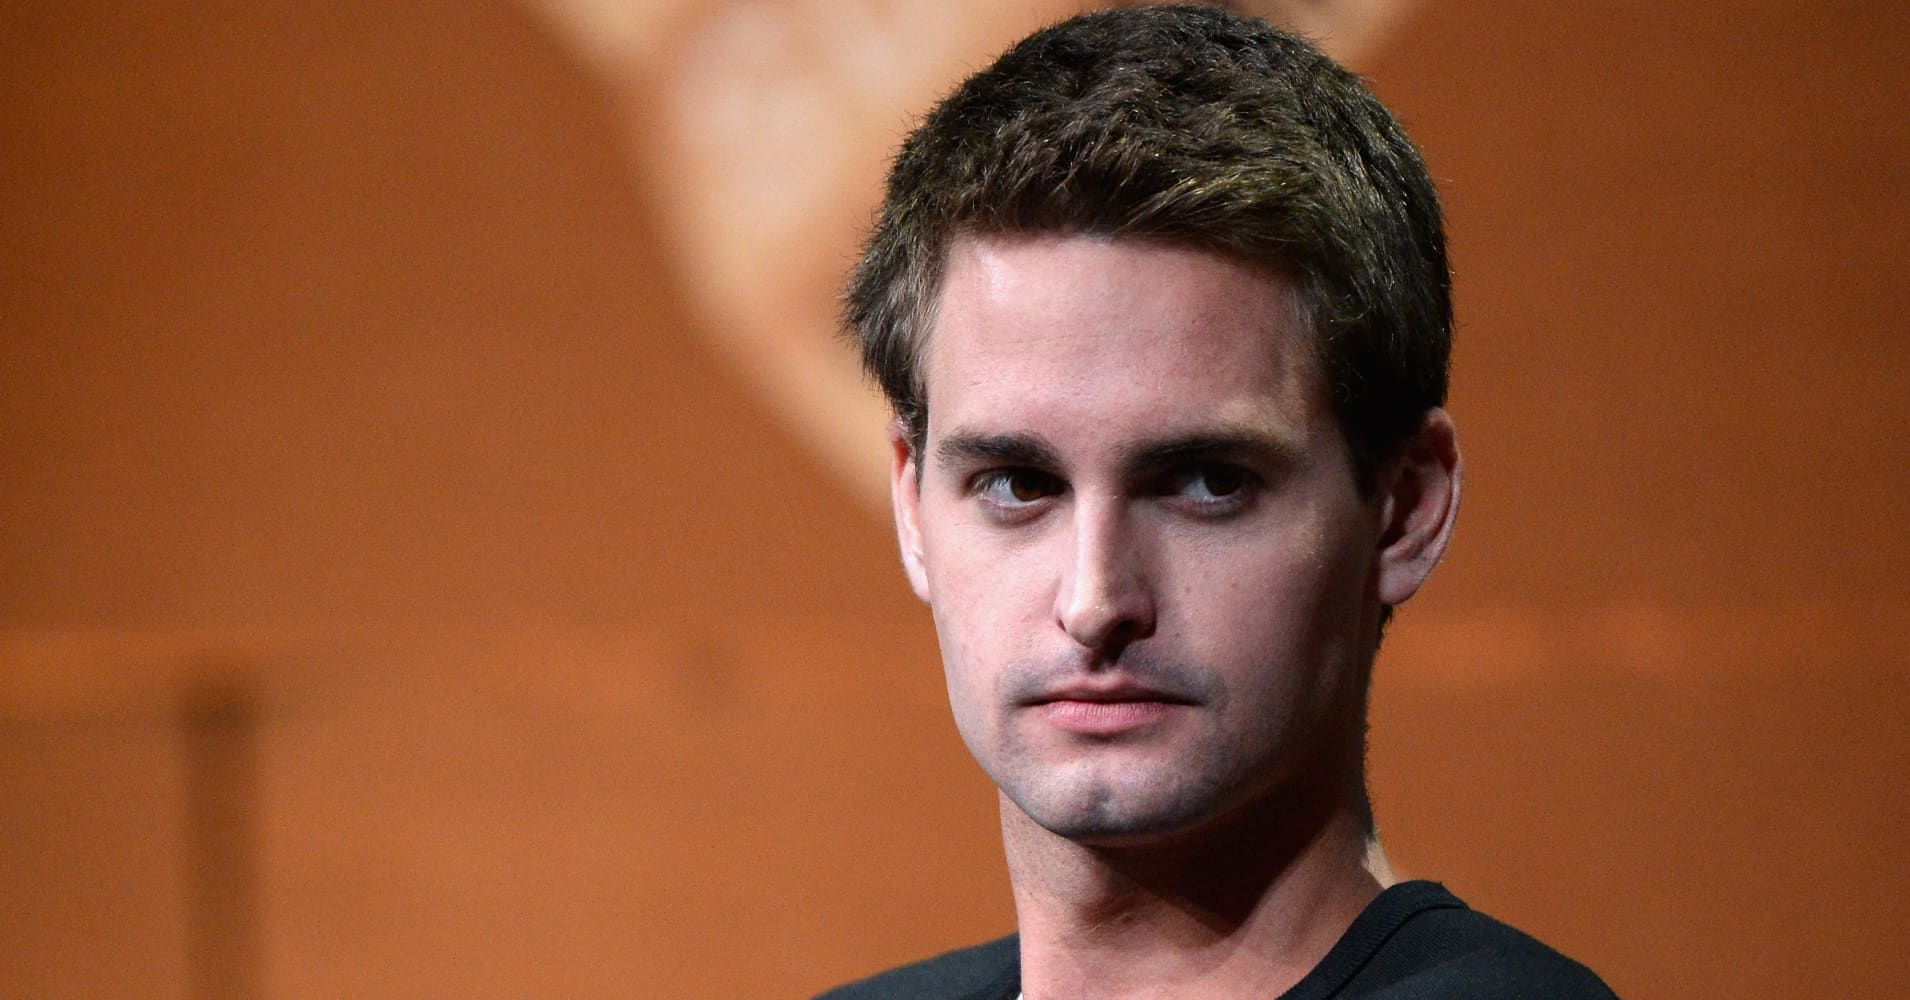 Evan Spiegel, co-founder and CEO of Snapchat